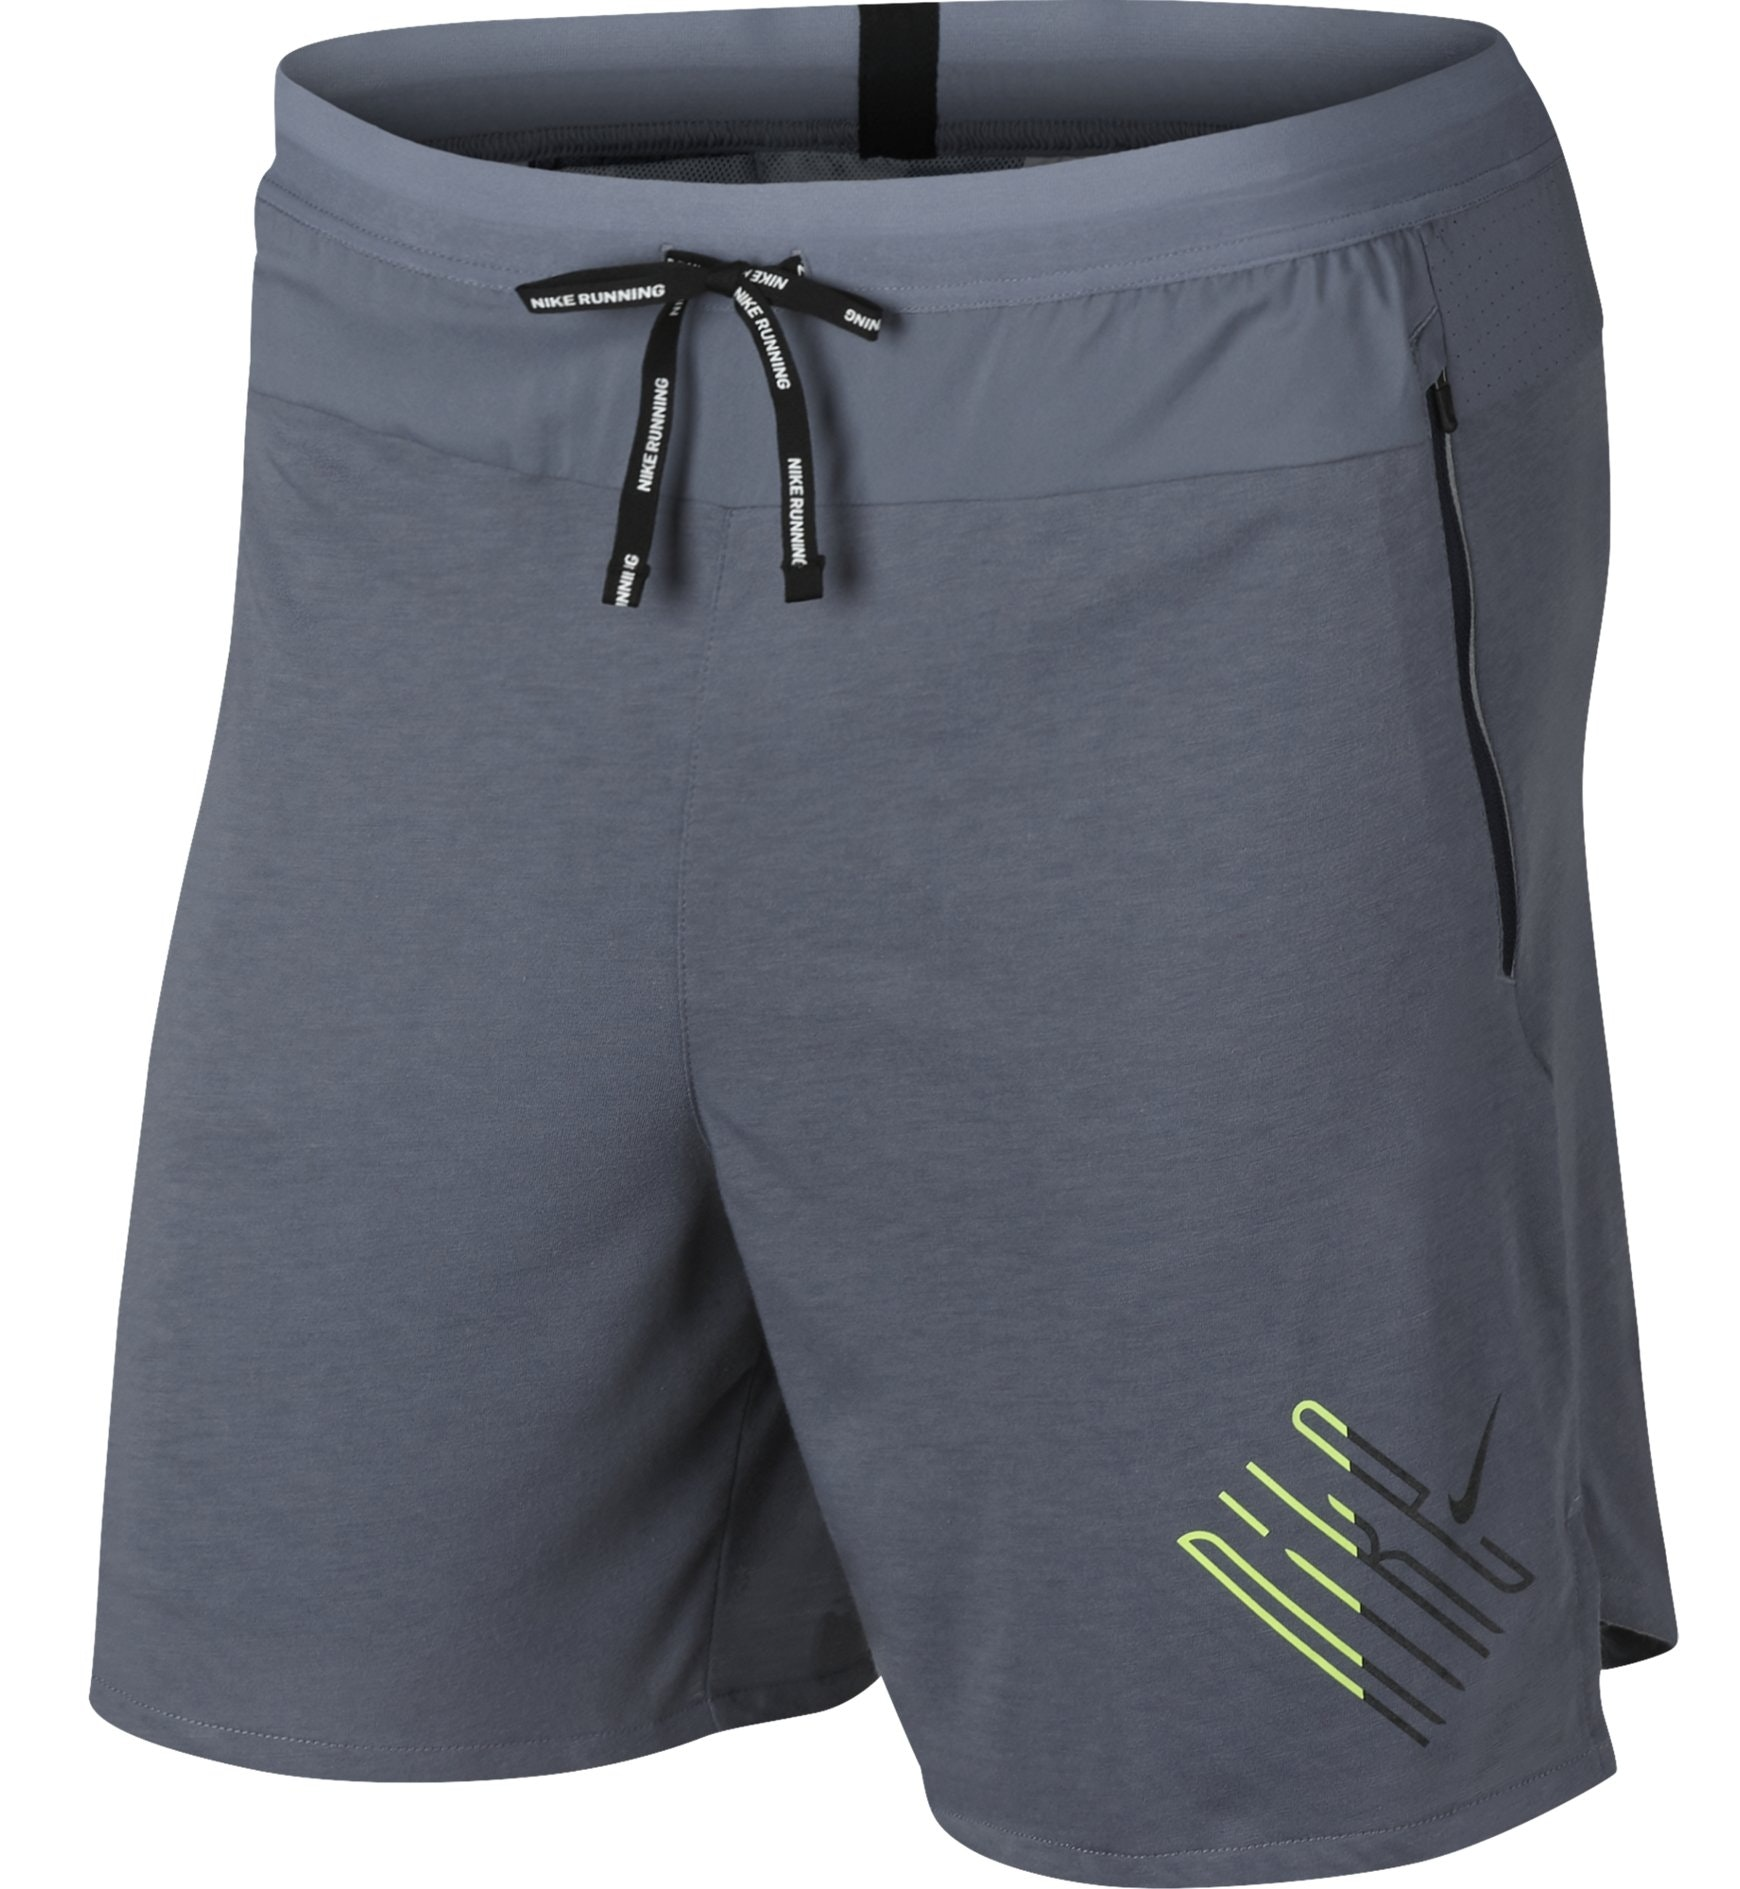 Nike Wild Run 2in1 Short - Laufhose kurz - Herren